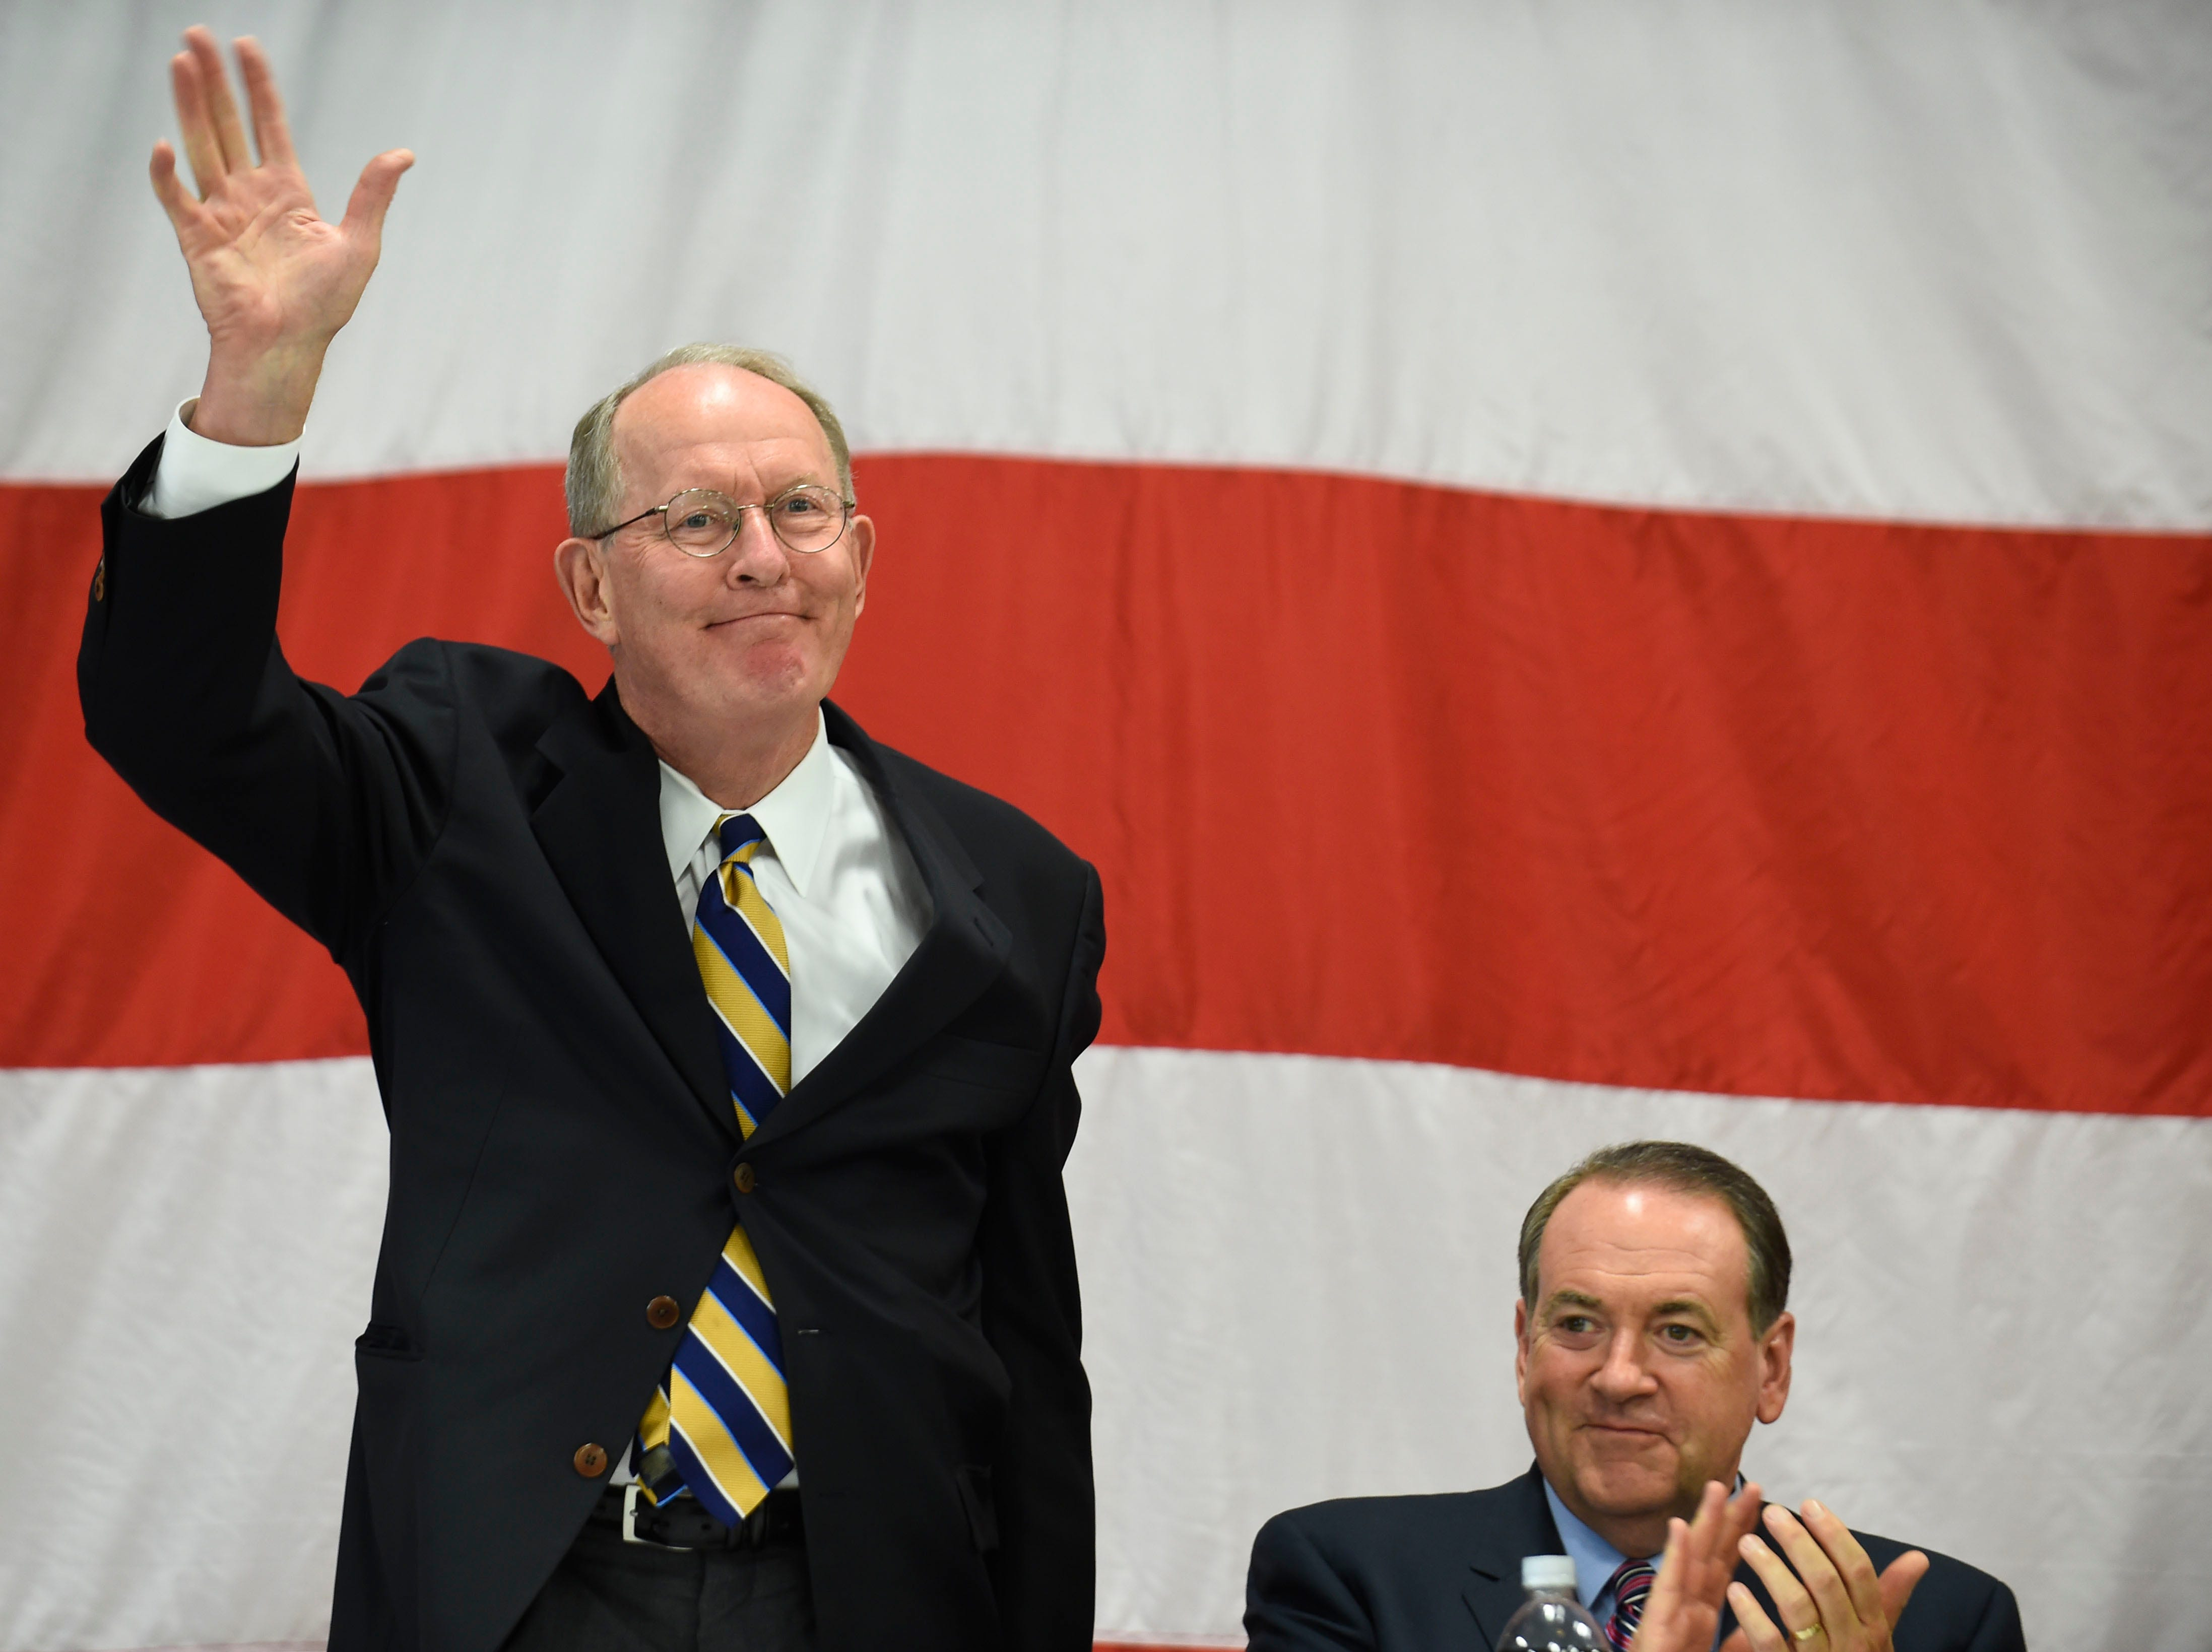 U.S. Sen. Lamar Alexander is introduced during the Lincoln Reagan Dinner at Campbell County High School in LaFollette, Saturday, July 12, 2014. Seated beside is former Arkansas Gov. Mike Huckabee.